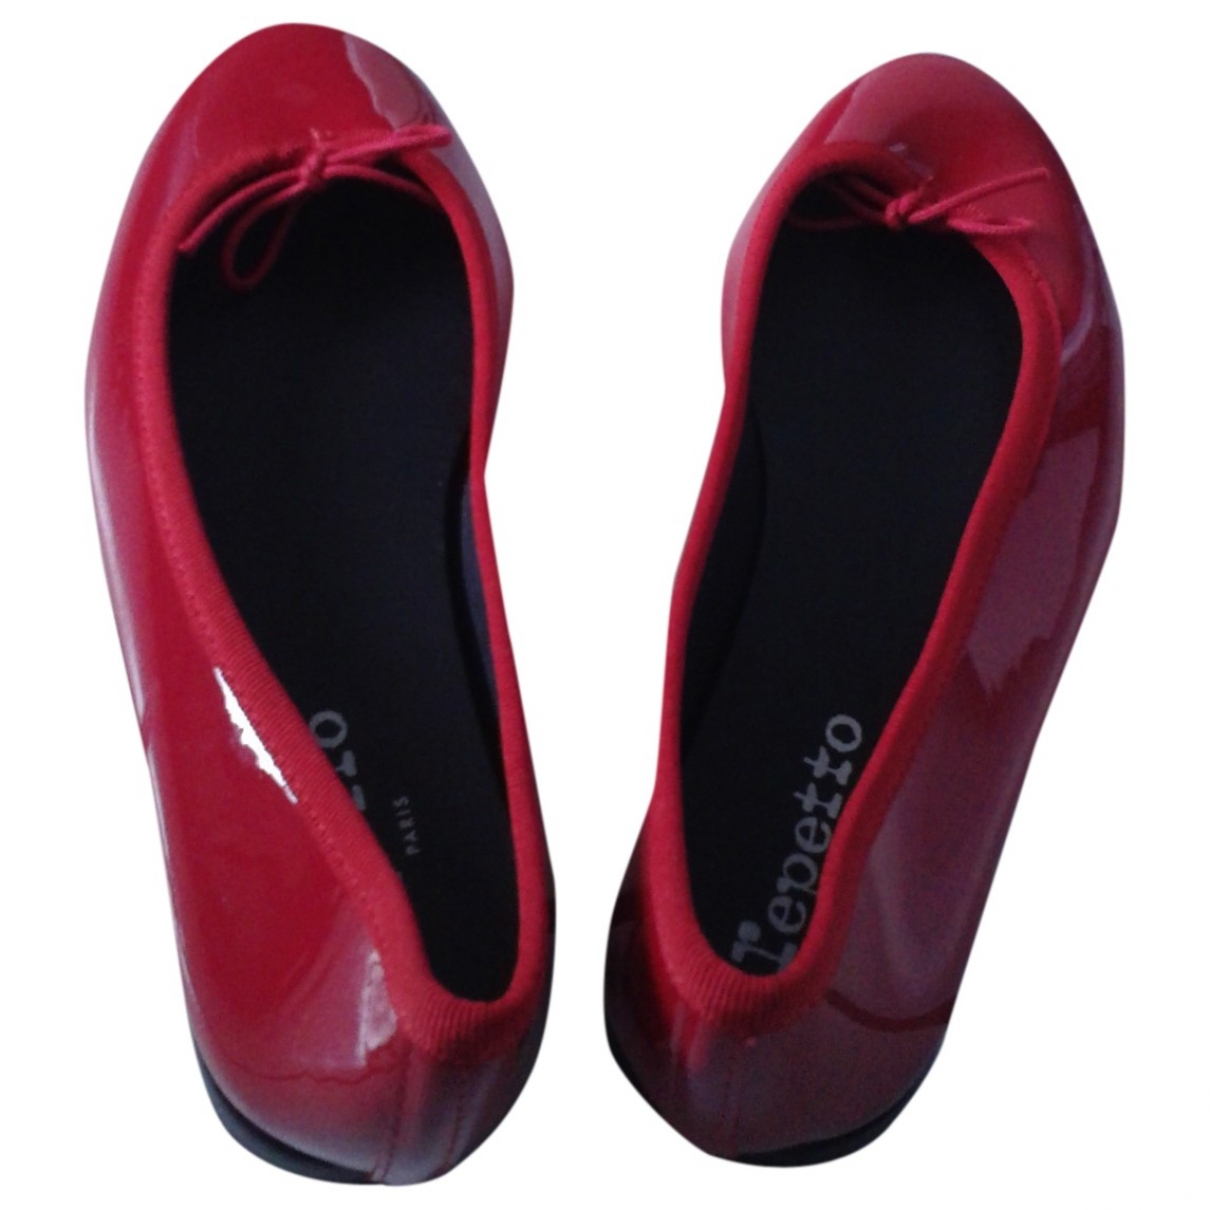 Repetto \N Red Patent leather Ballet flats for Women 37 EU